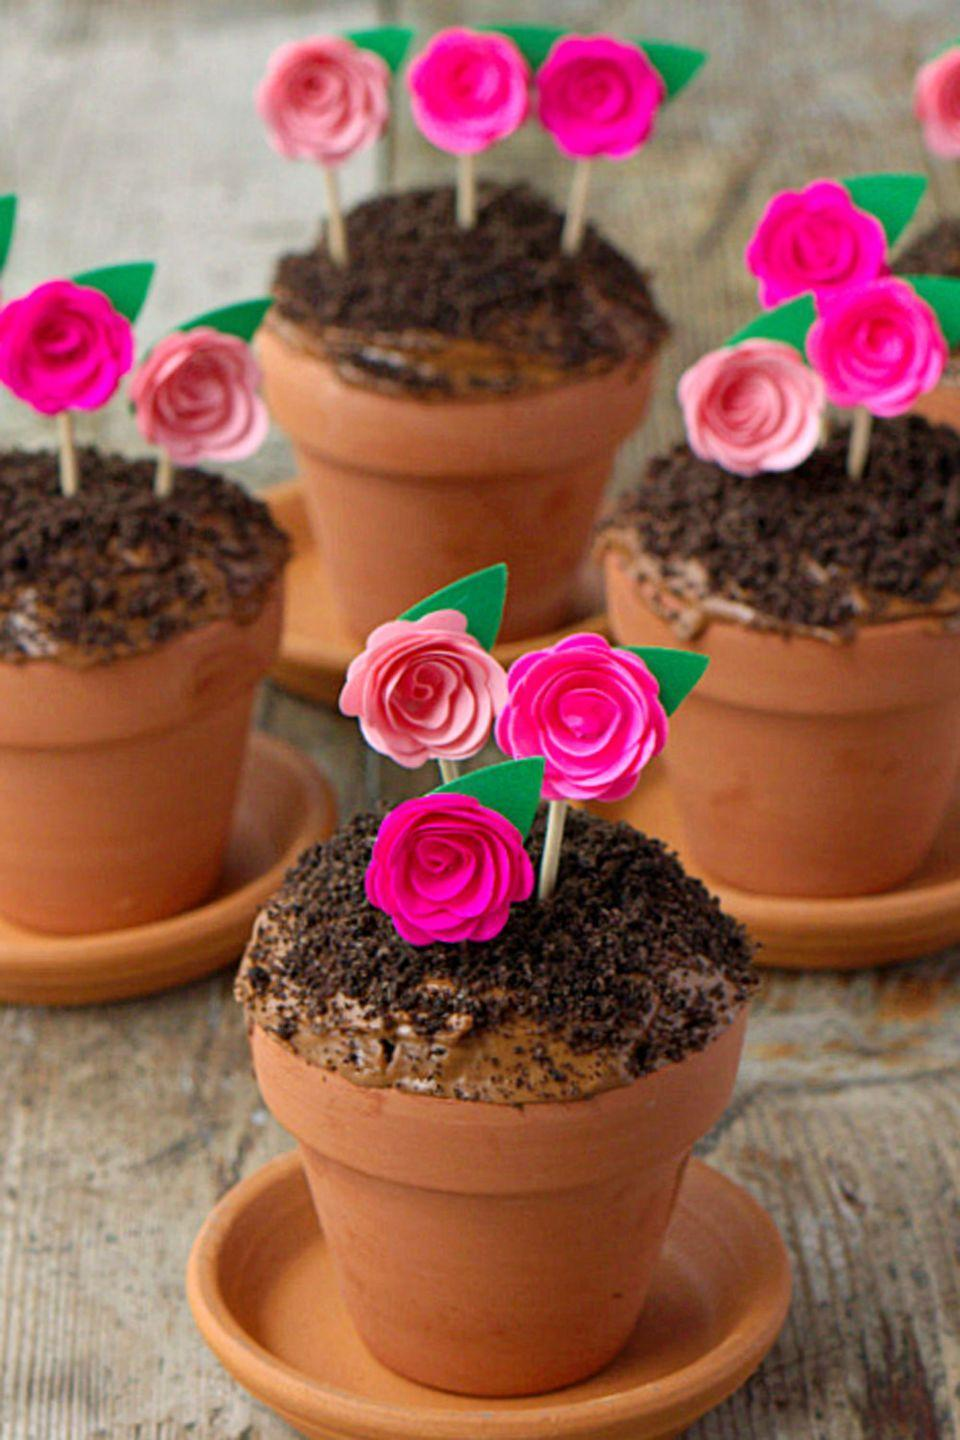 """<p>Put down your gardening tools and pick up your hand mixer to create these adorable, kid-friendly treats. </p><p>Get the full recipe from <a href=""""https://thissillygirlskitchen.com/flowerpot-cupcakes/"""" rel=""""nofollow noopener"""" target=""""_blank"""" data-ylk=""""slk:This Silly Girls Kitchen"""" class=""""link rapid-noclick-resp"""">This Silly Girls Kitchen</a>.</p>"""